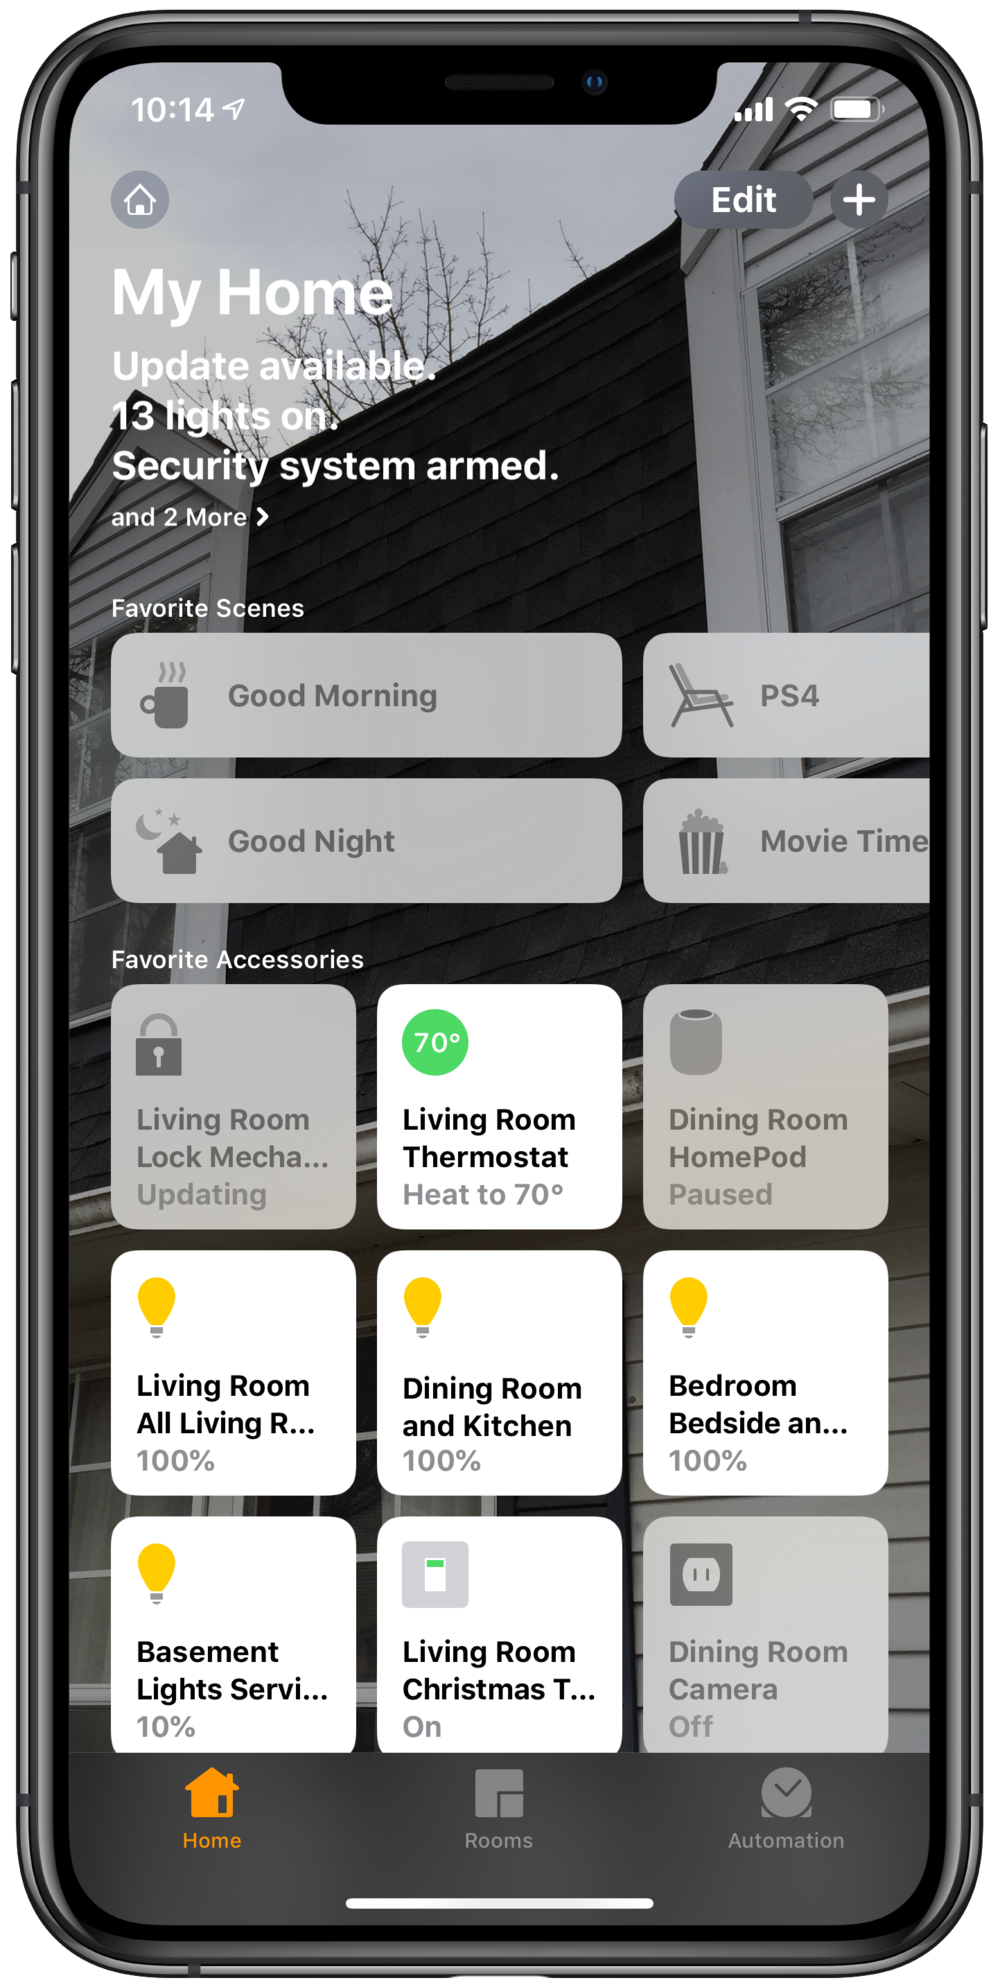 The My Home view in Apple Home shows my most used home automation devices and 'scenes.'